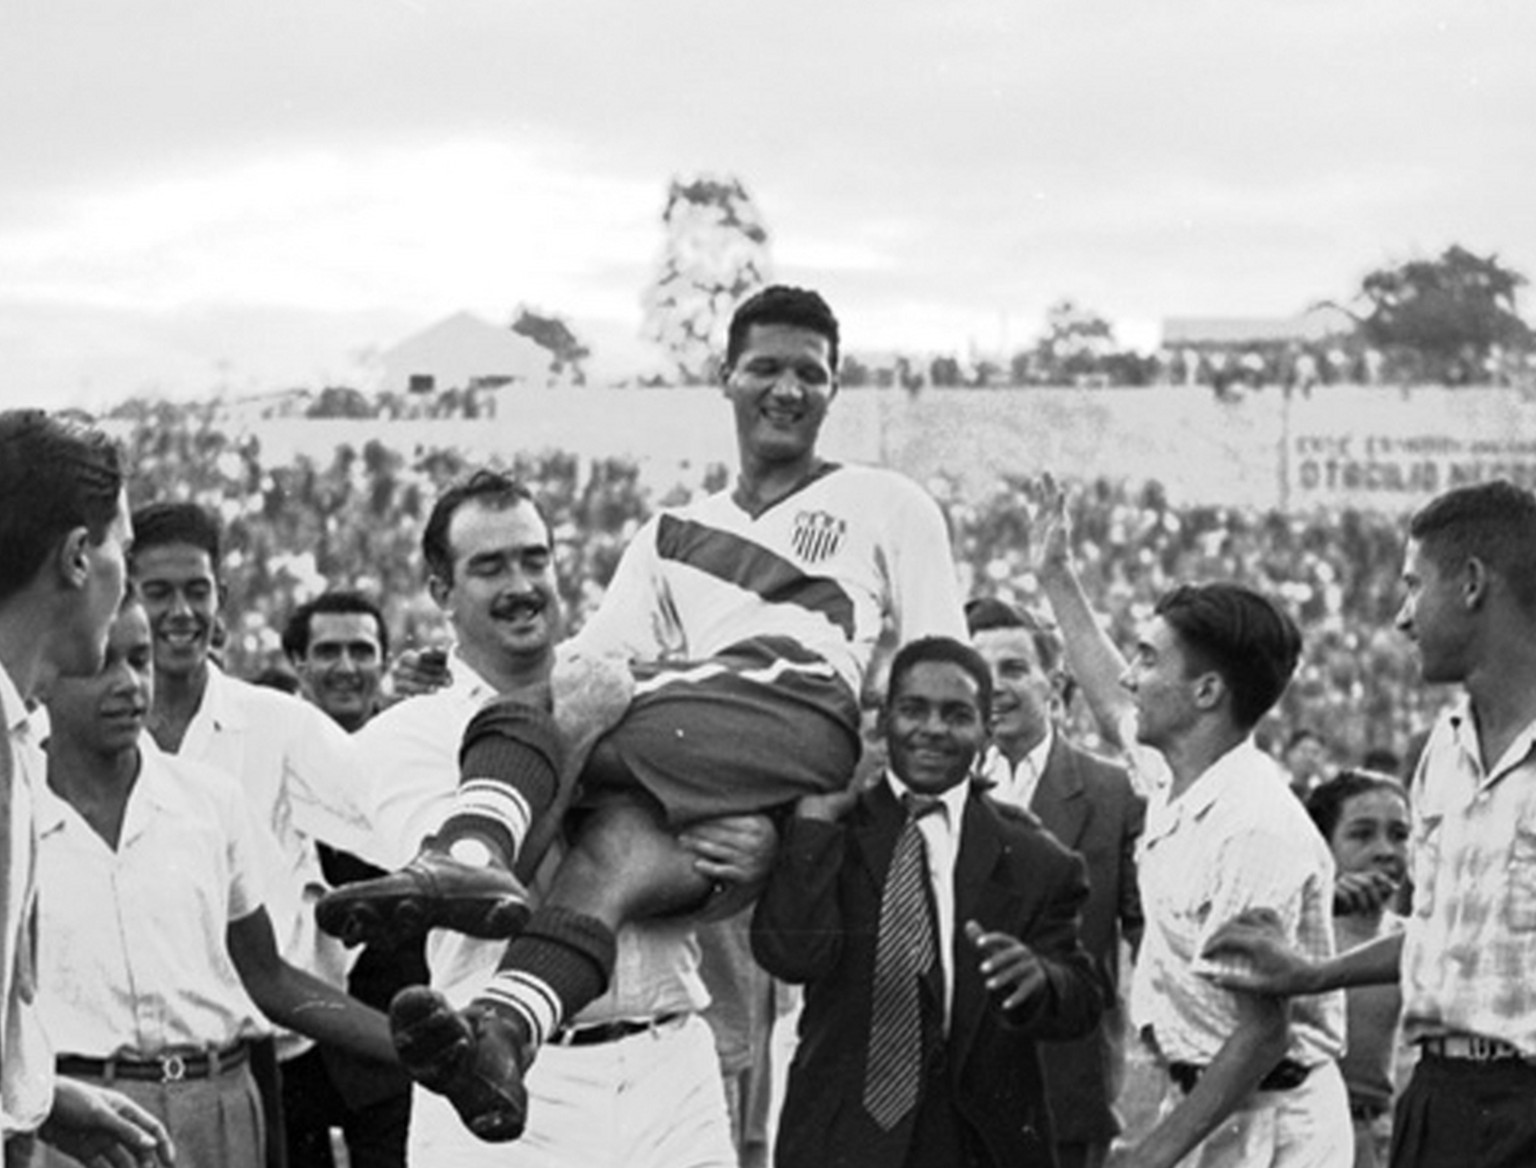 FILE - In this June 28, 1950 file photo, United States soccer player Joe Gaetjens is carried off by cheering fans after the USA team beat England 1-0 in a World Cup soccer match in Belo Horizonte, Brazil. Gaetjens scored the winning goal in the shock result of the tournament. Sixty years after the Americans beat England in what is still considered one of soccer's greatest upsets, the United States and England will meet in their group opener at the World Cup in South Africa in June 2010. (AP Photo, File)